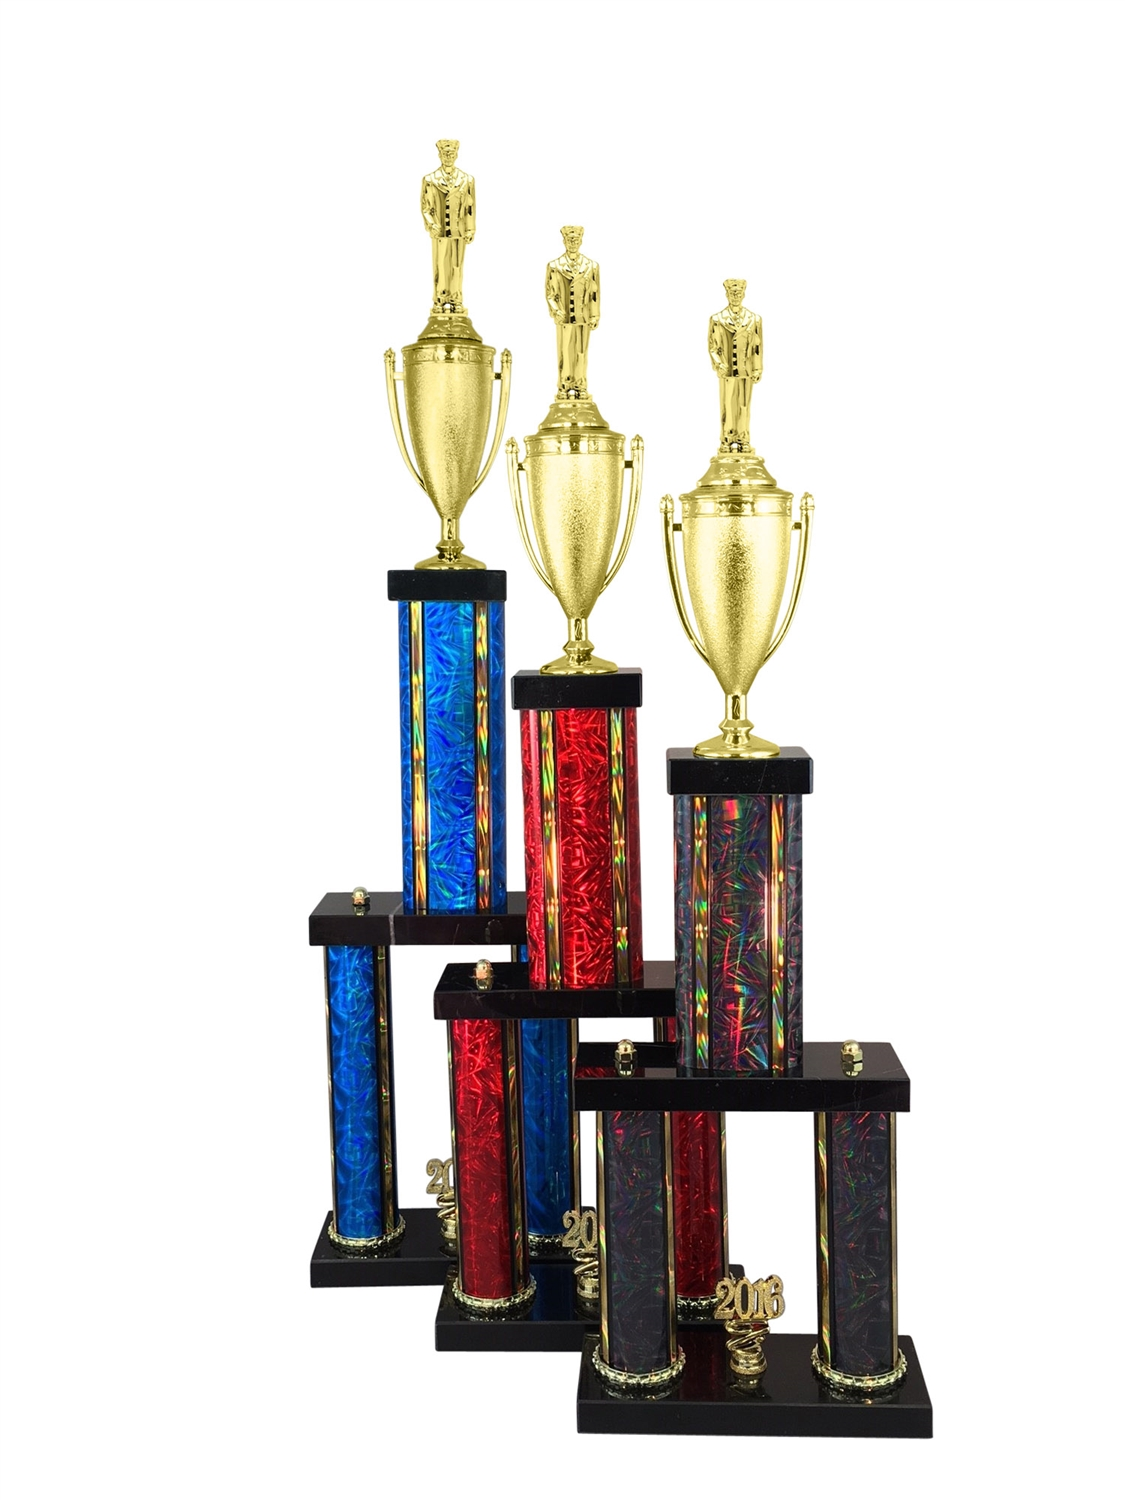 Fireman Trophy Available in 11 Color & 6 Size Options